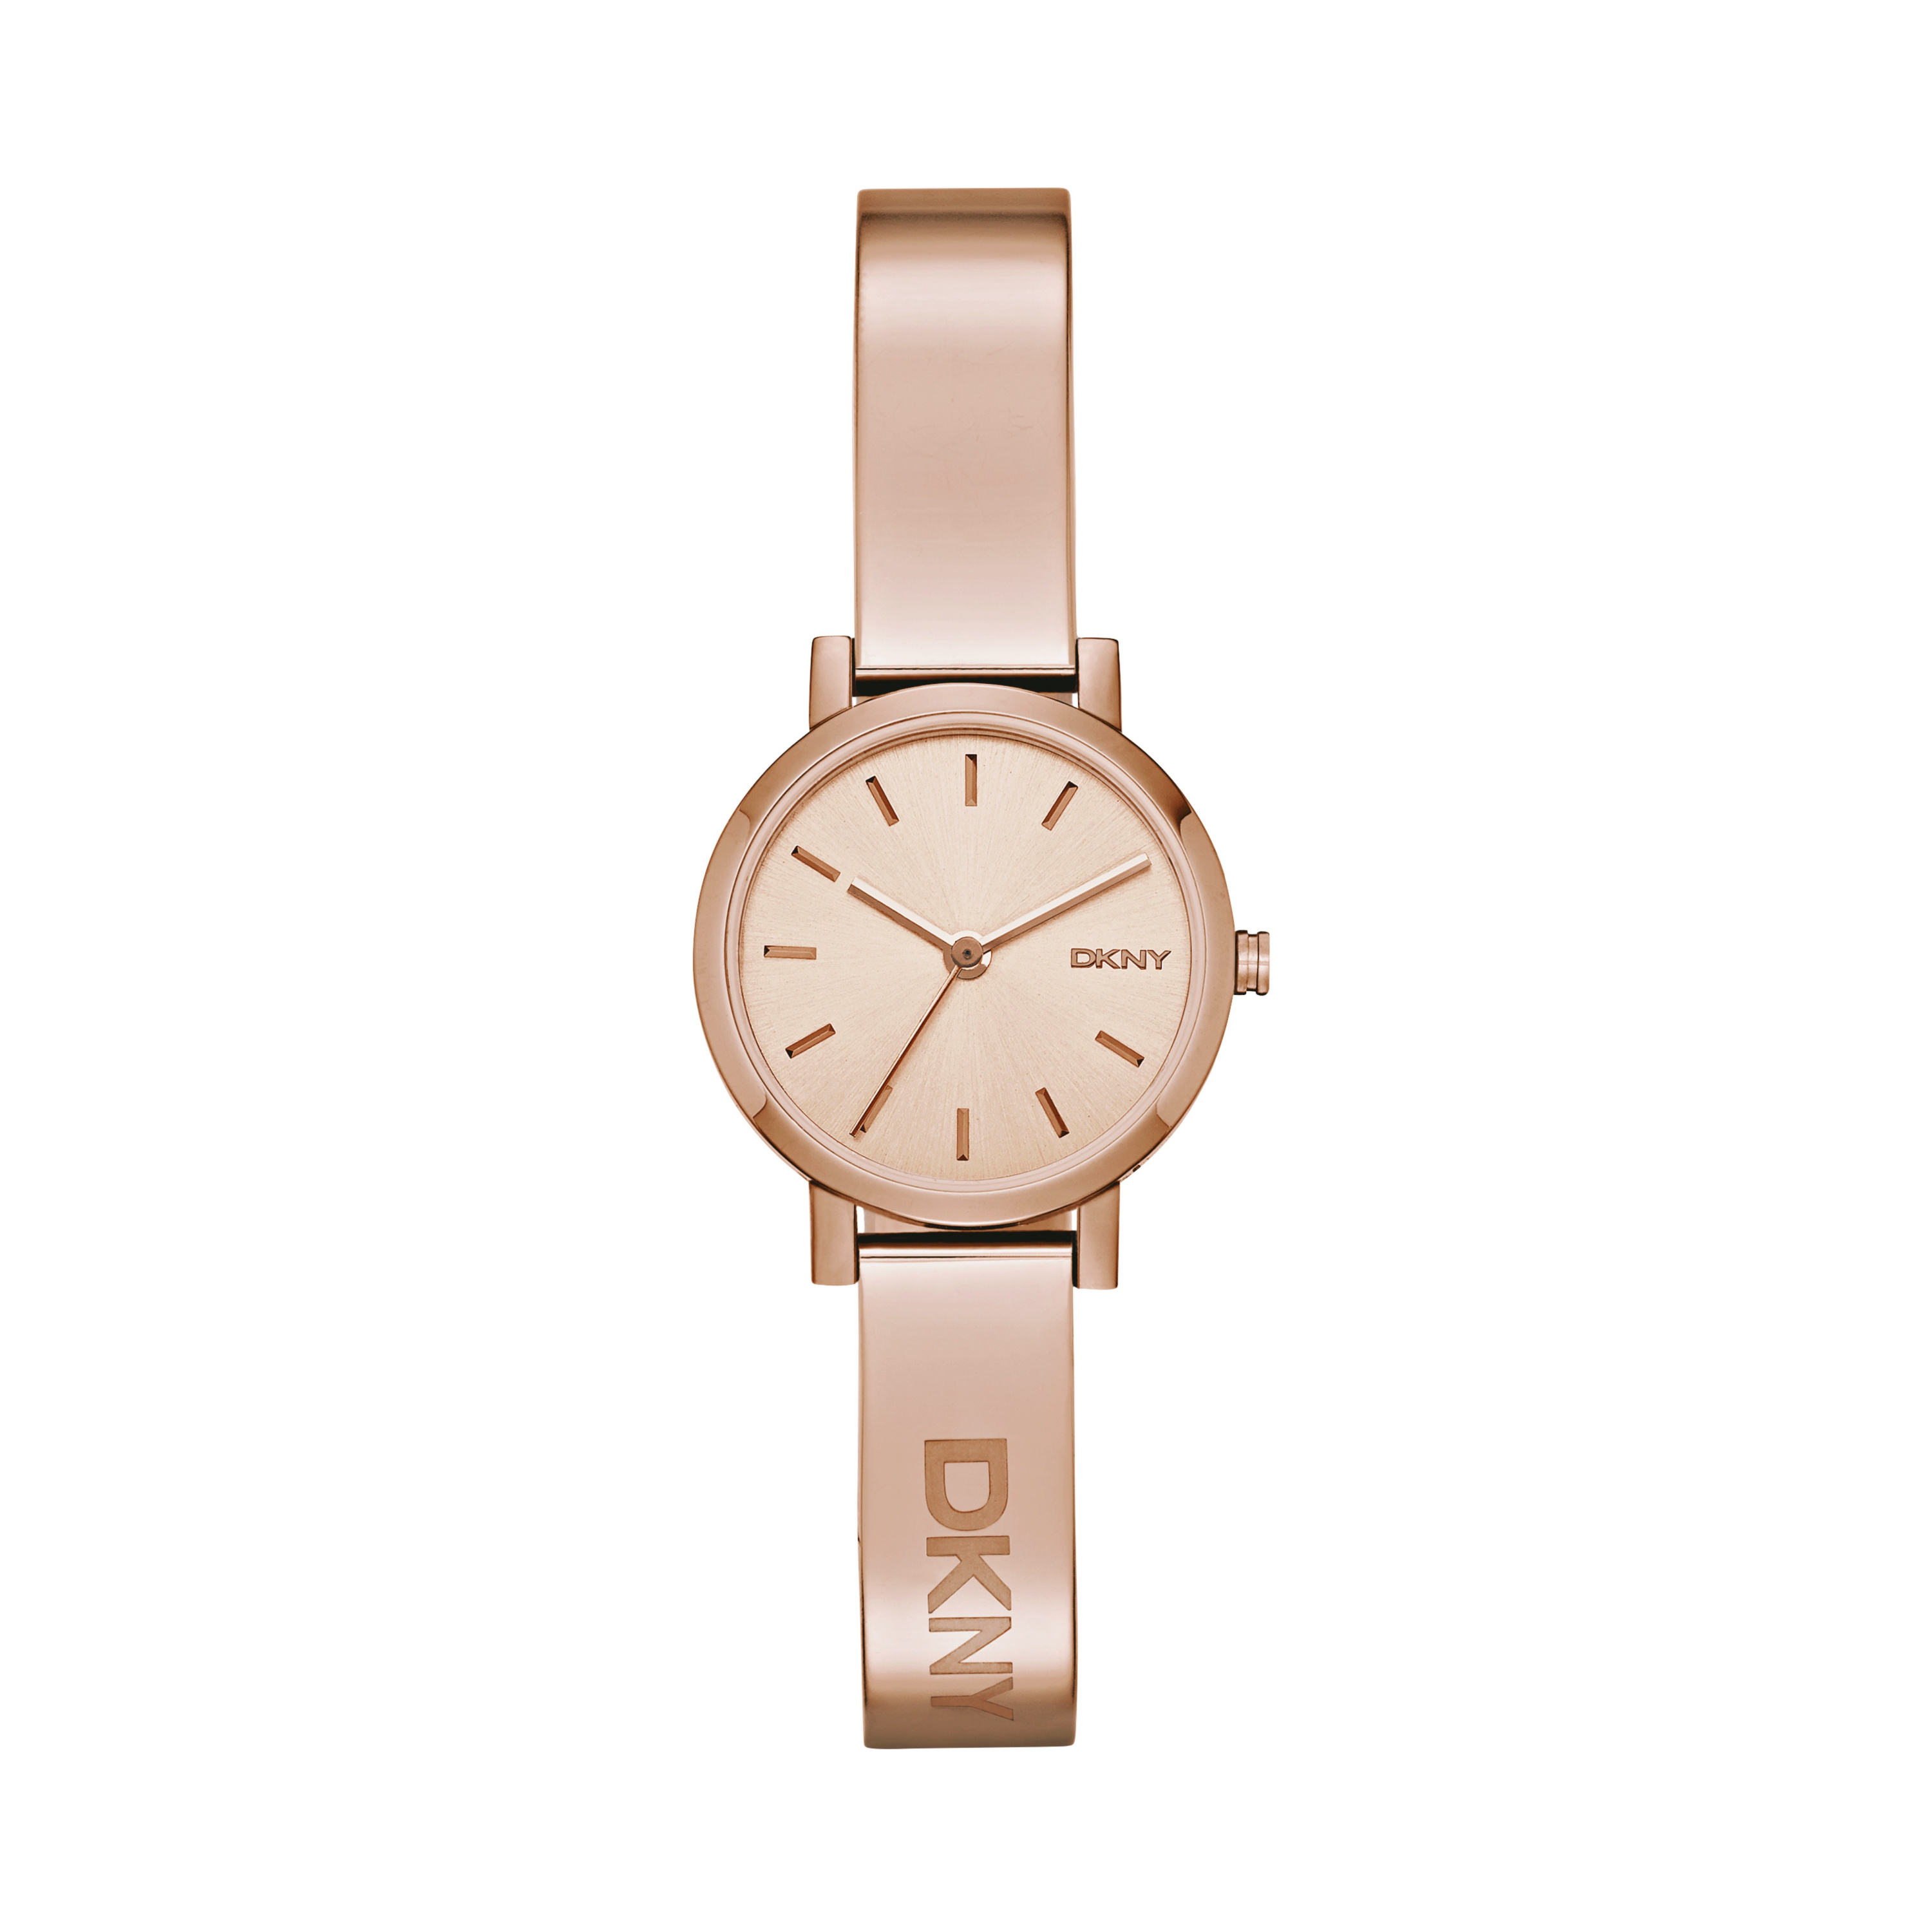 DKNY NY2308 Soho 24 mm rose-goudkleurig Dameshorloge